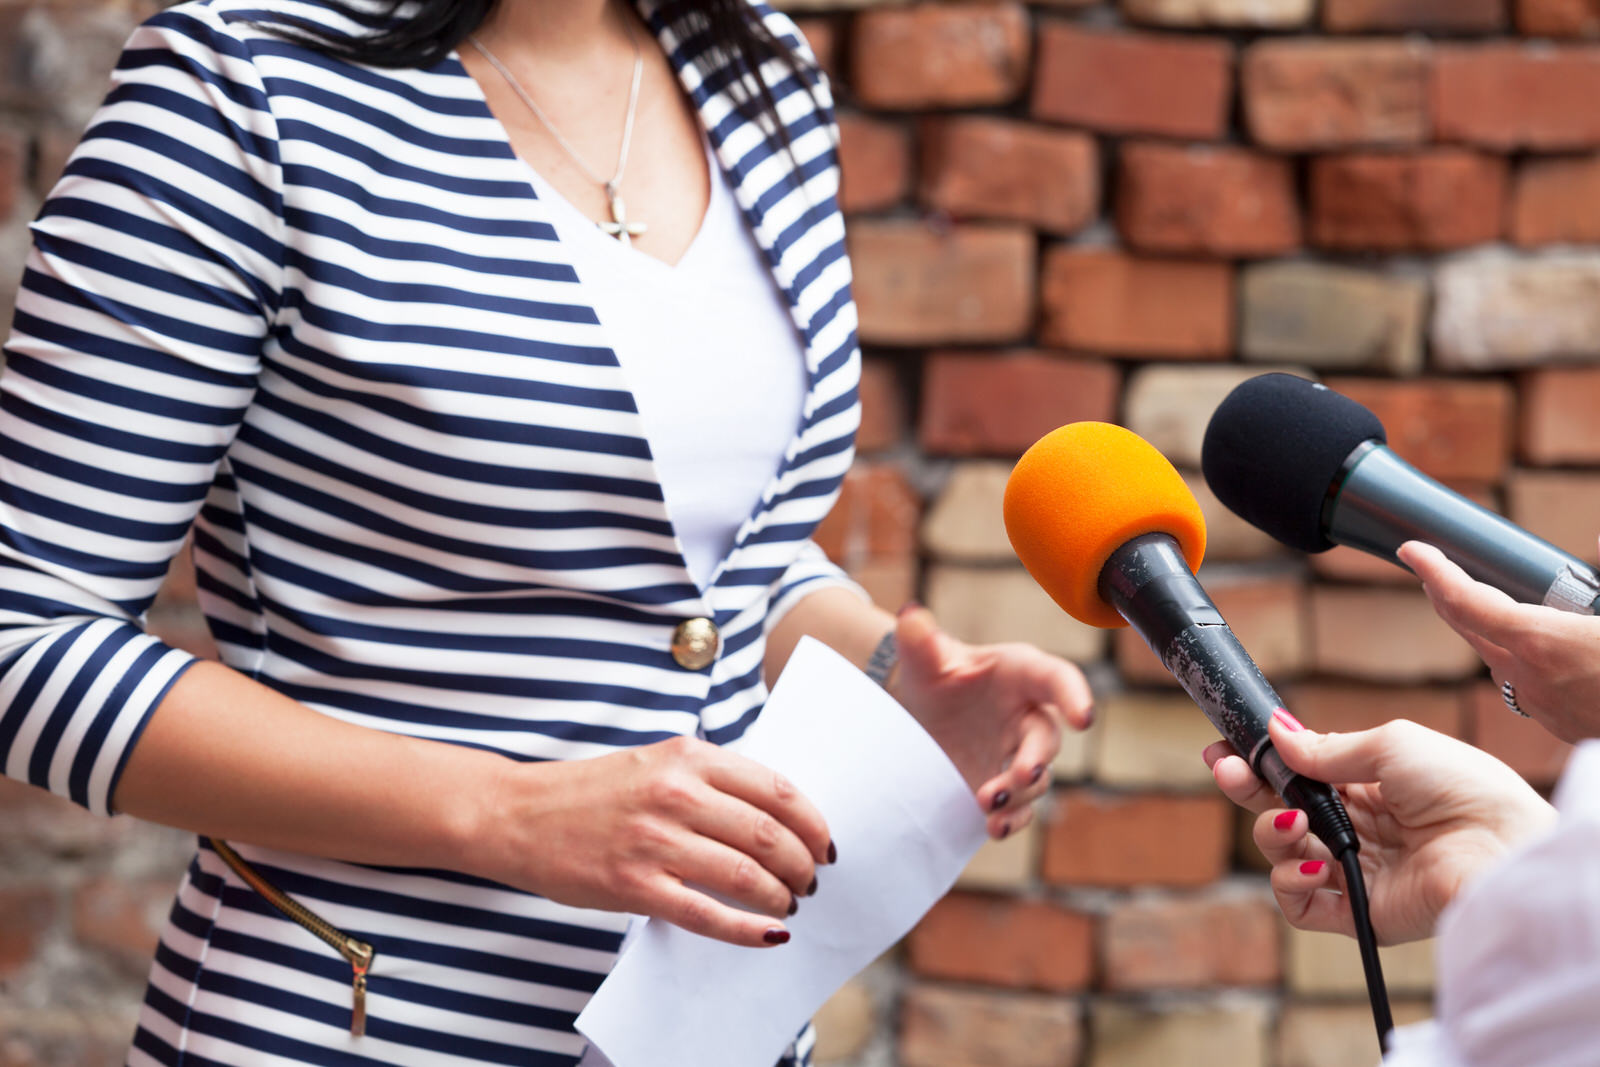 Woman at press conference